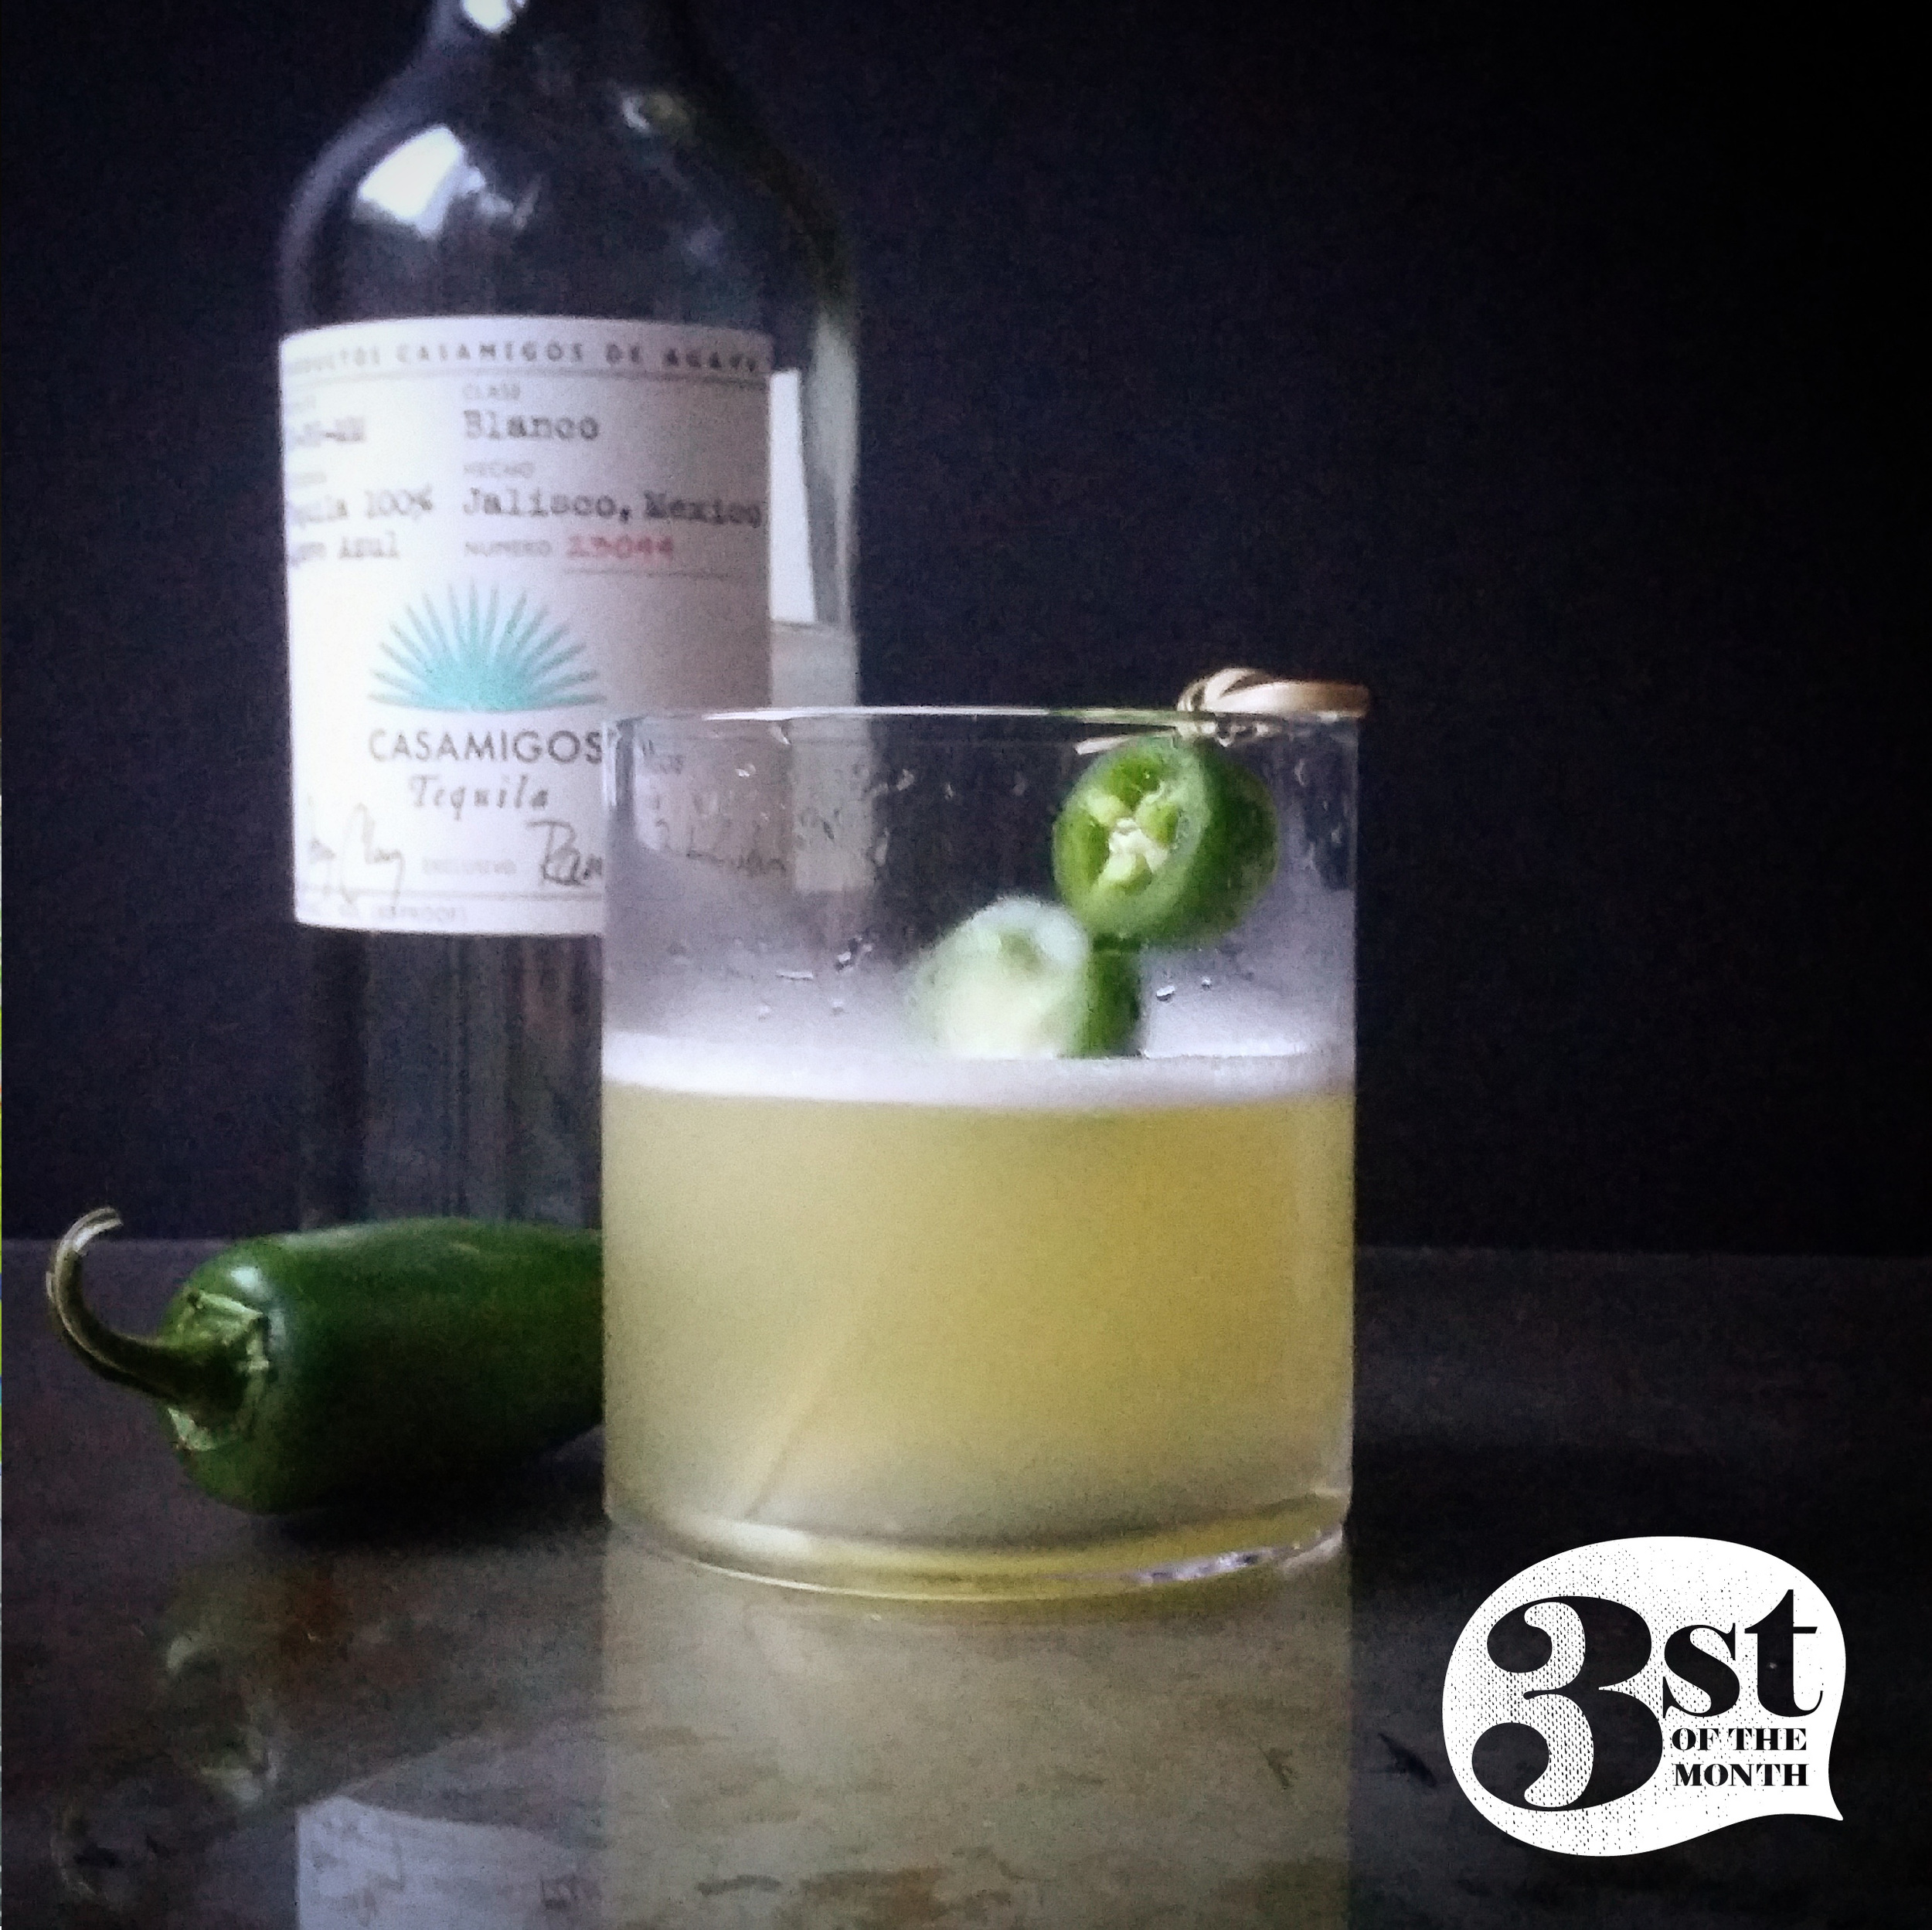 Fresh jalapeño, pineapple juice and tequila - from 3st of the Month